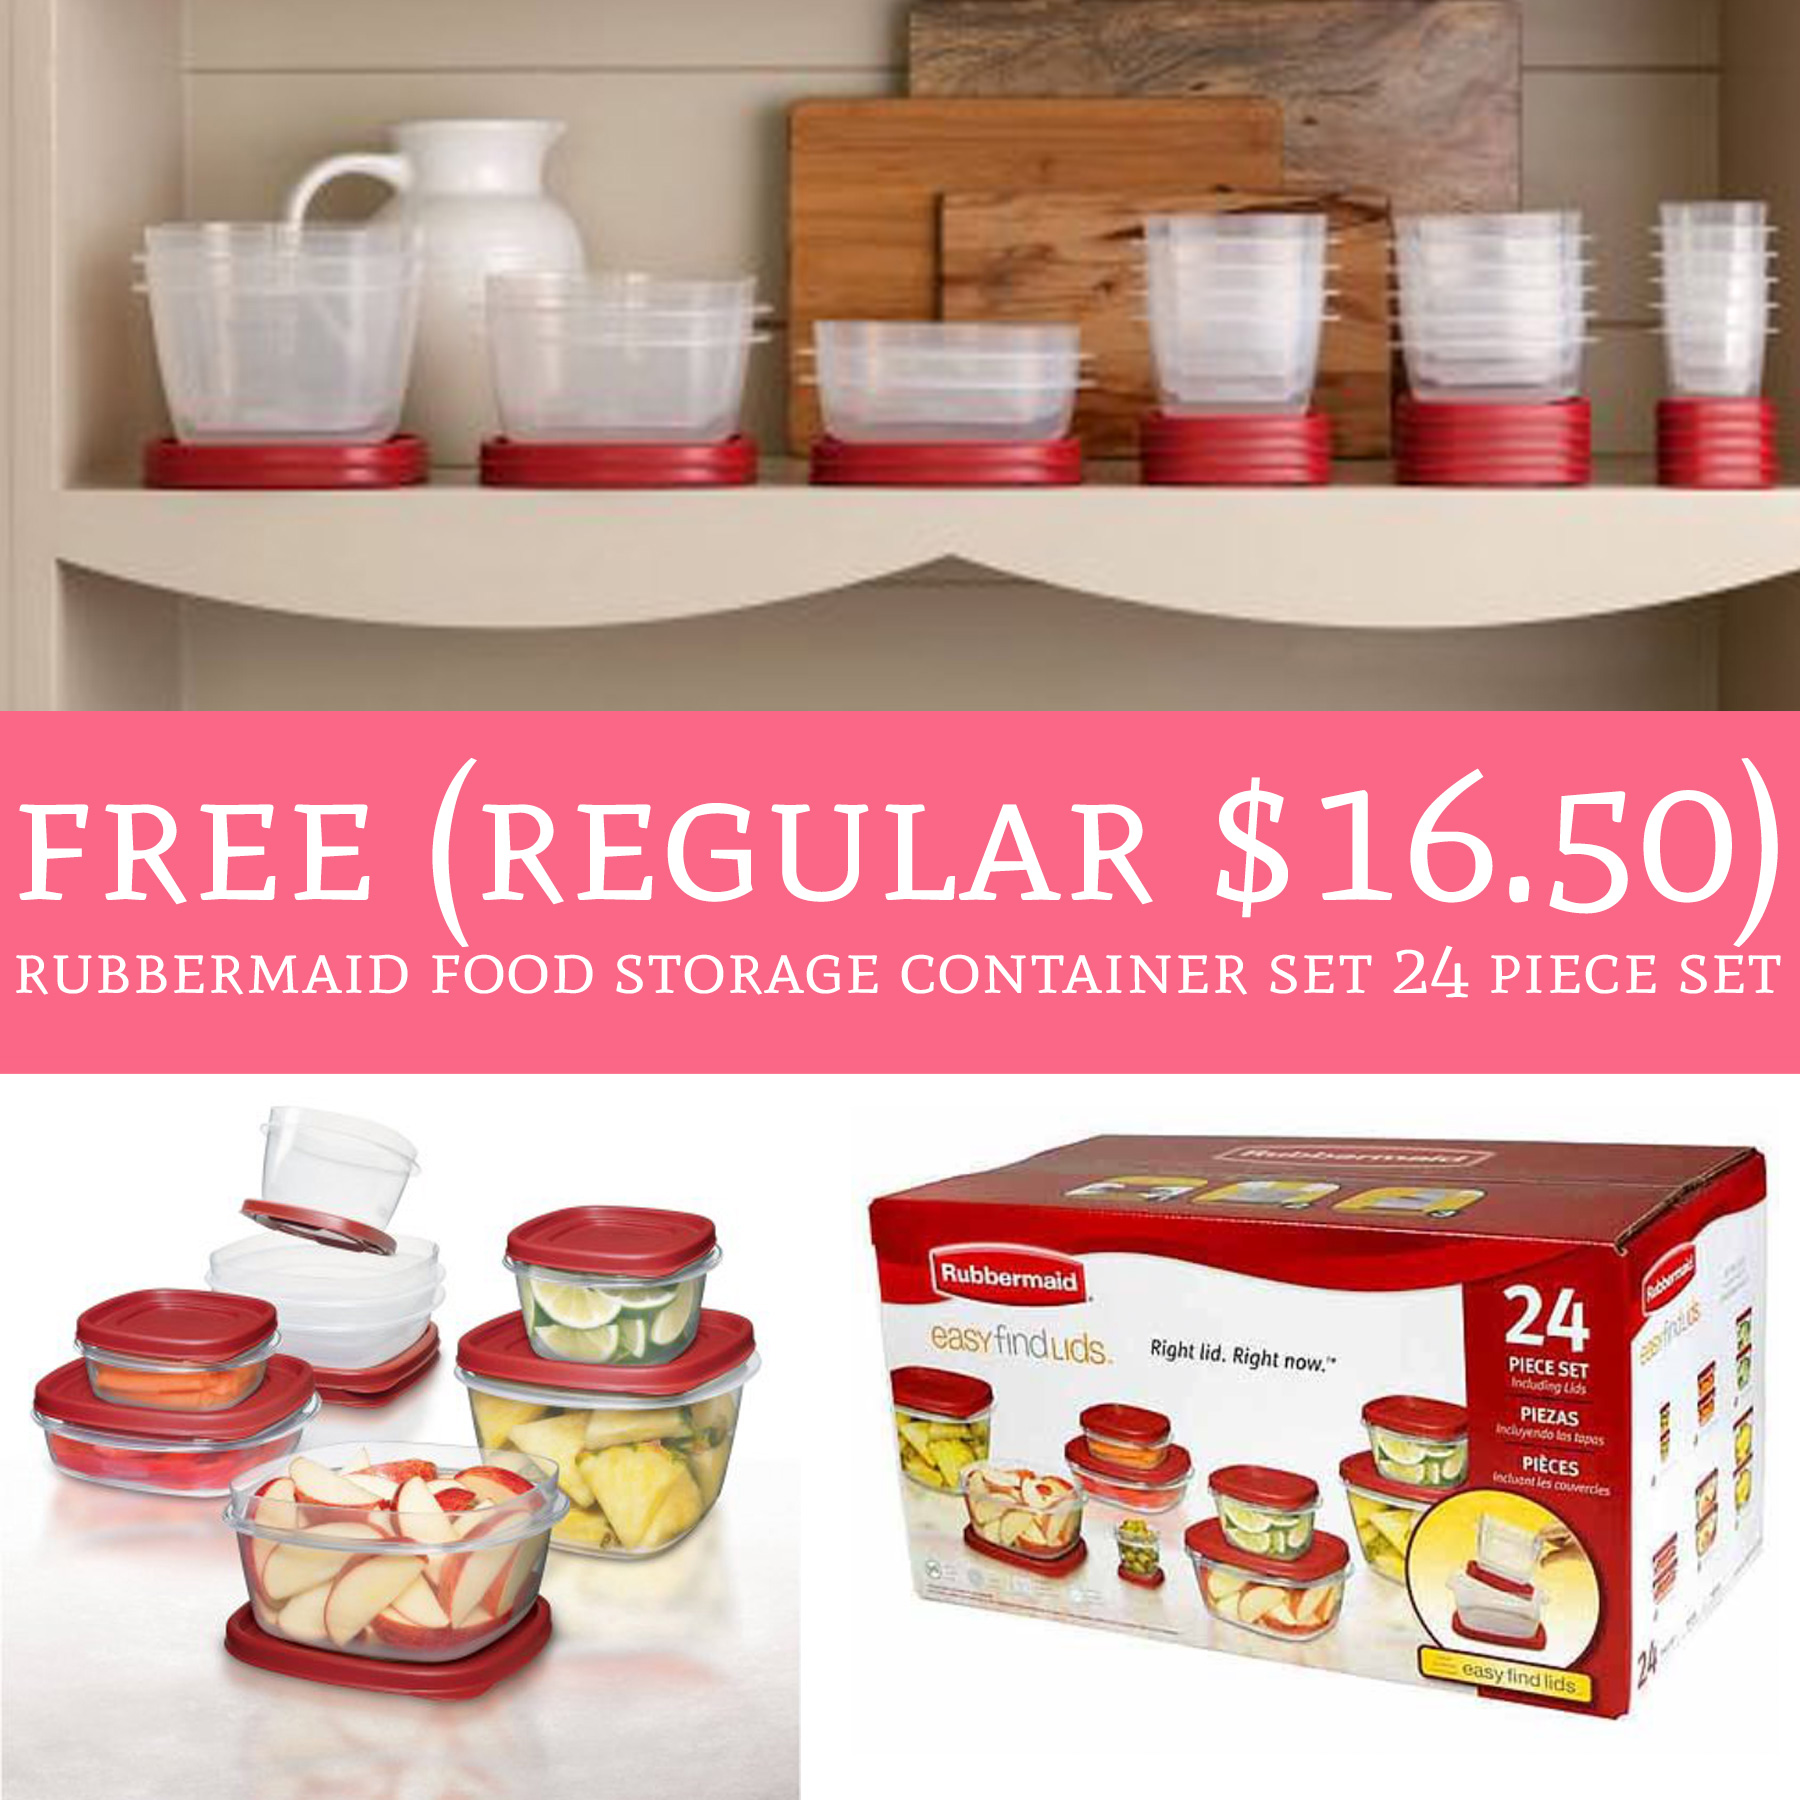 RUN FREE Reg 1650 Rubbermaid Food Storage Container Set 24